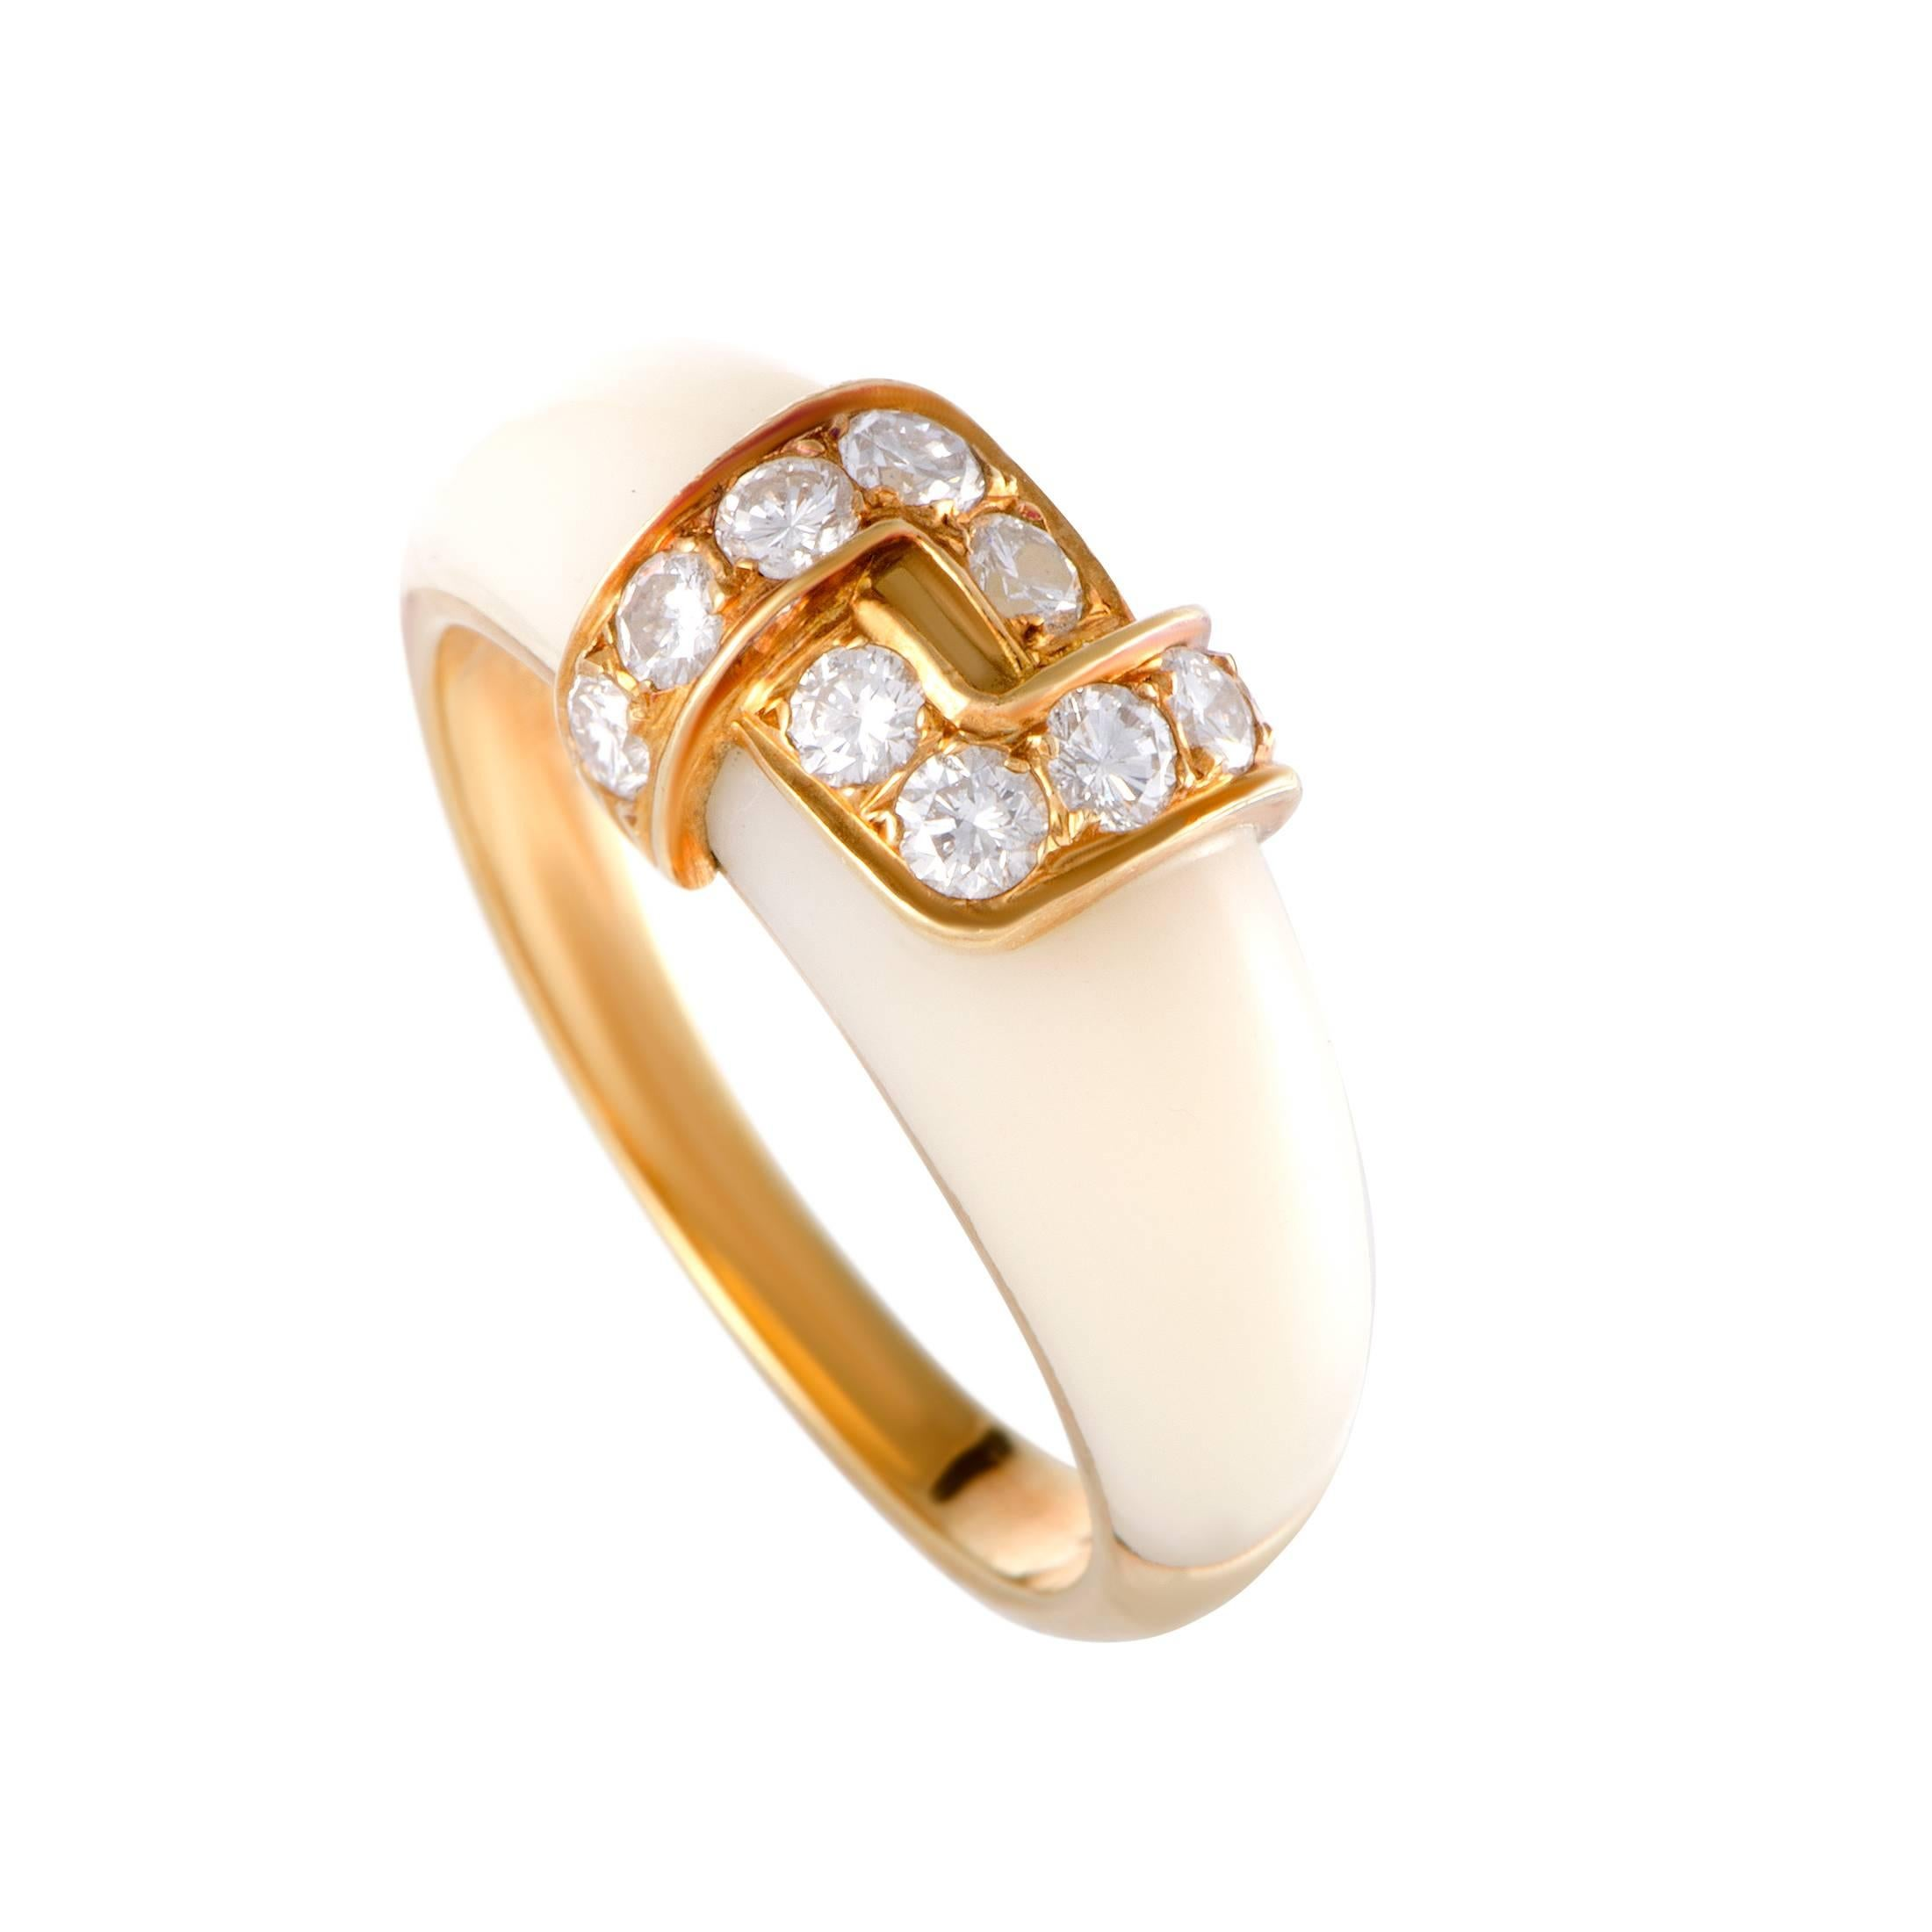 diamond dream band bulgari rings wedding id ring diva onyx gold sale j jewelry master for bvlgari at